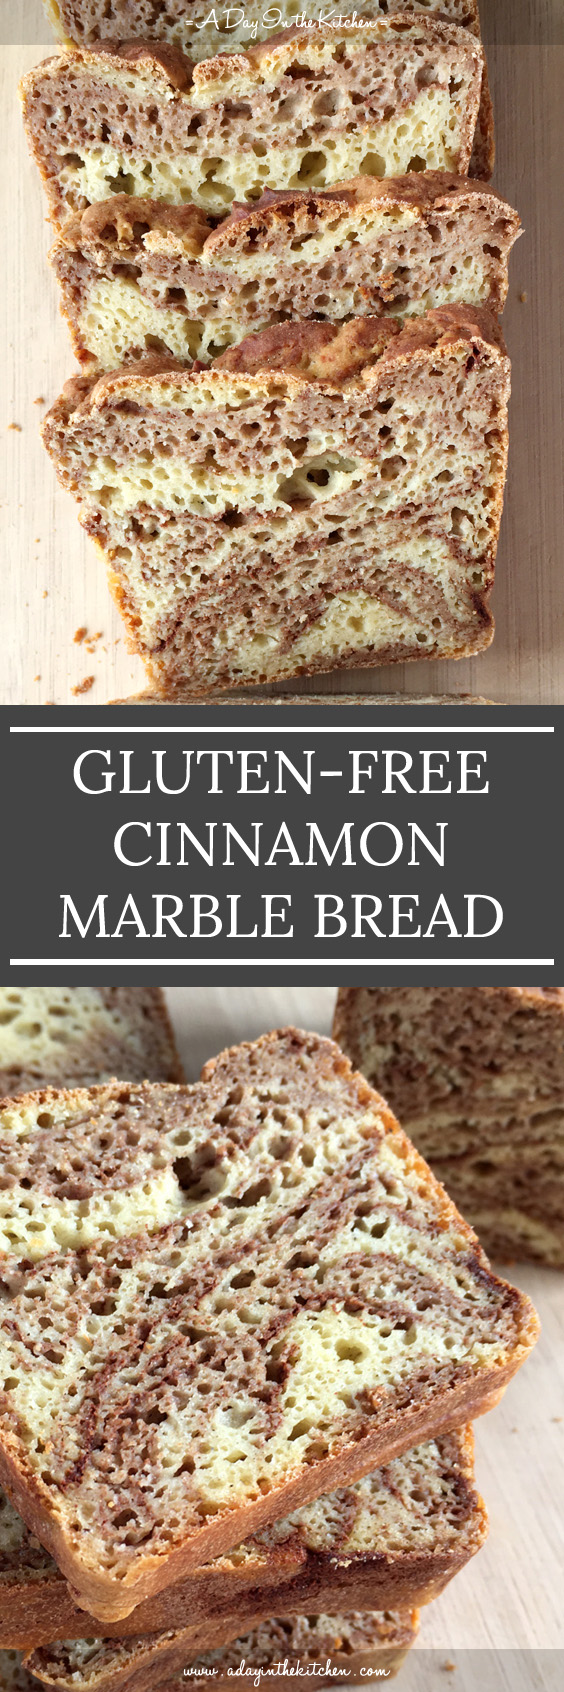 Like yellow, orange, and red leaves, nothing says fall like a yummy Cinnamon Marble Bread. Soft and light, you would never guess it's gluten-free! #glutenfree #cinnamonbread #cinnamon #glutenfreebread